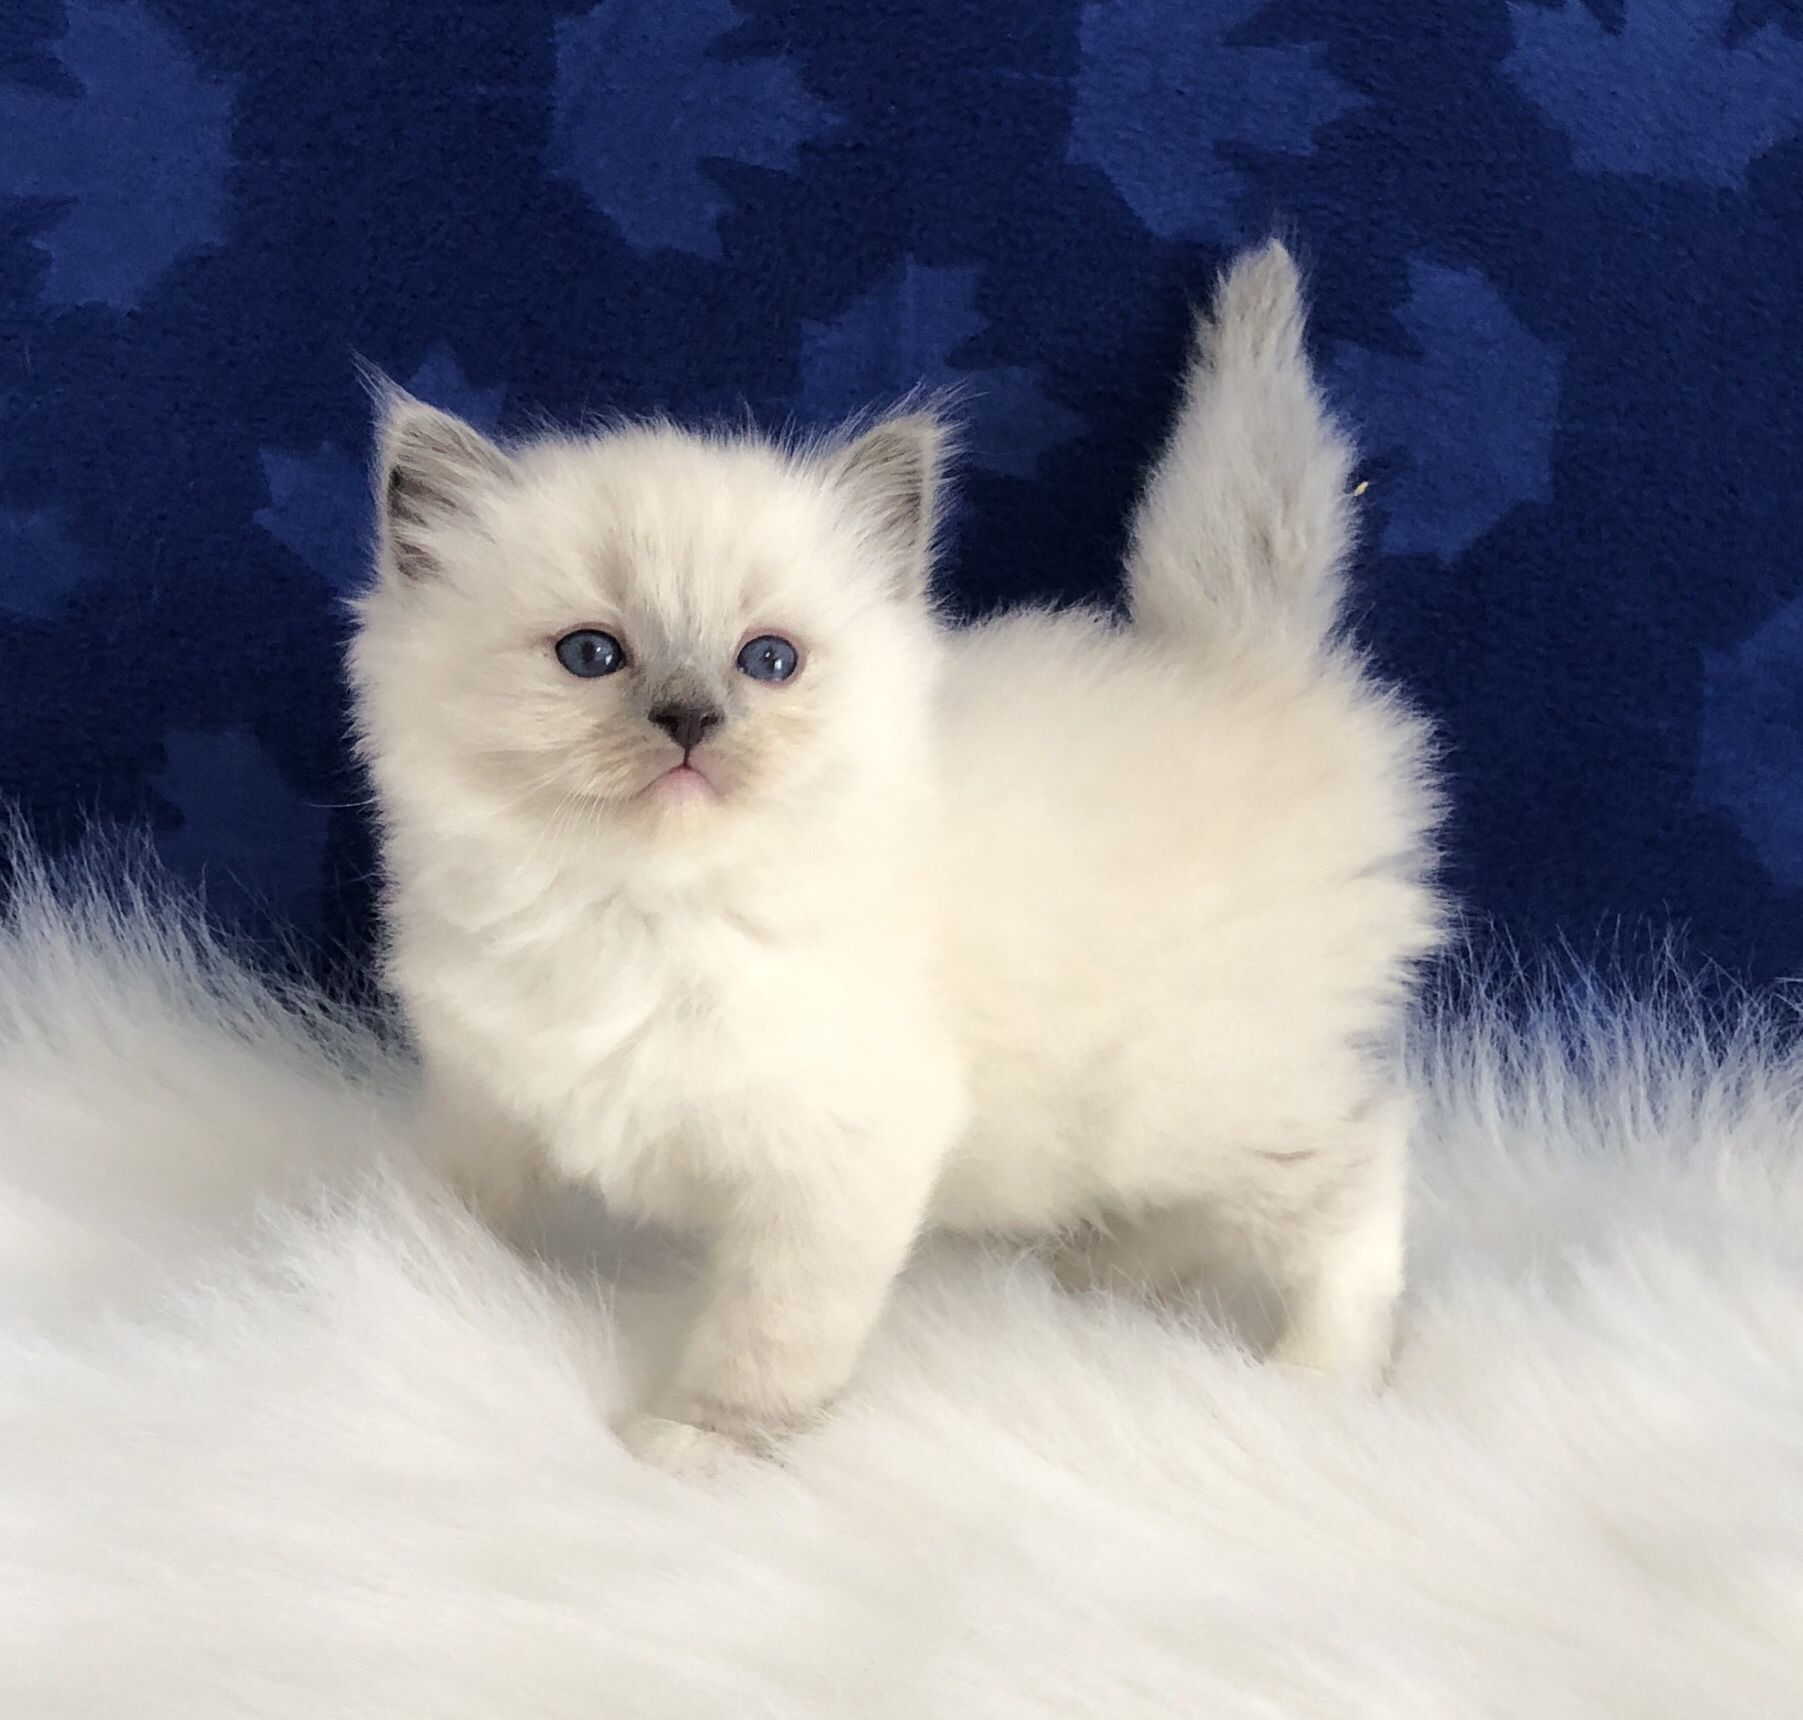 Ragdoll Cats Ragdoll Kittens For Sale O Canada Ragdolls Cinnamon Ragdolls Solid Ragdolls Mi Ragdoll Kittens For Sale Cute Cats And Kittens Beautiful Kittens